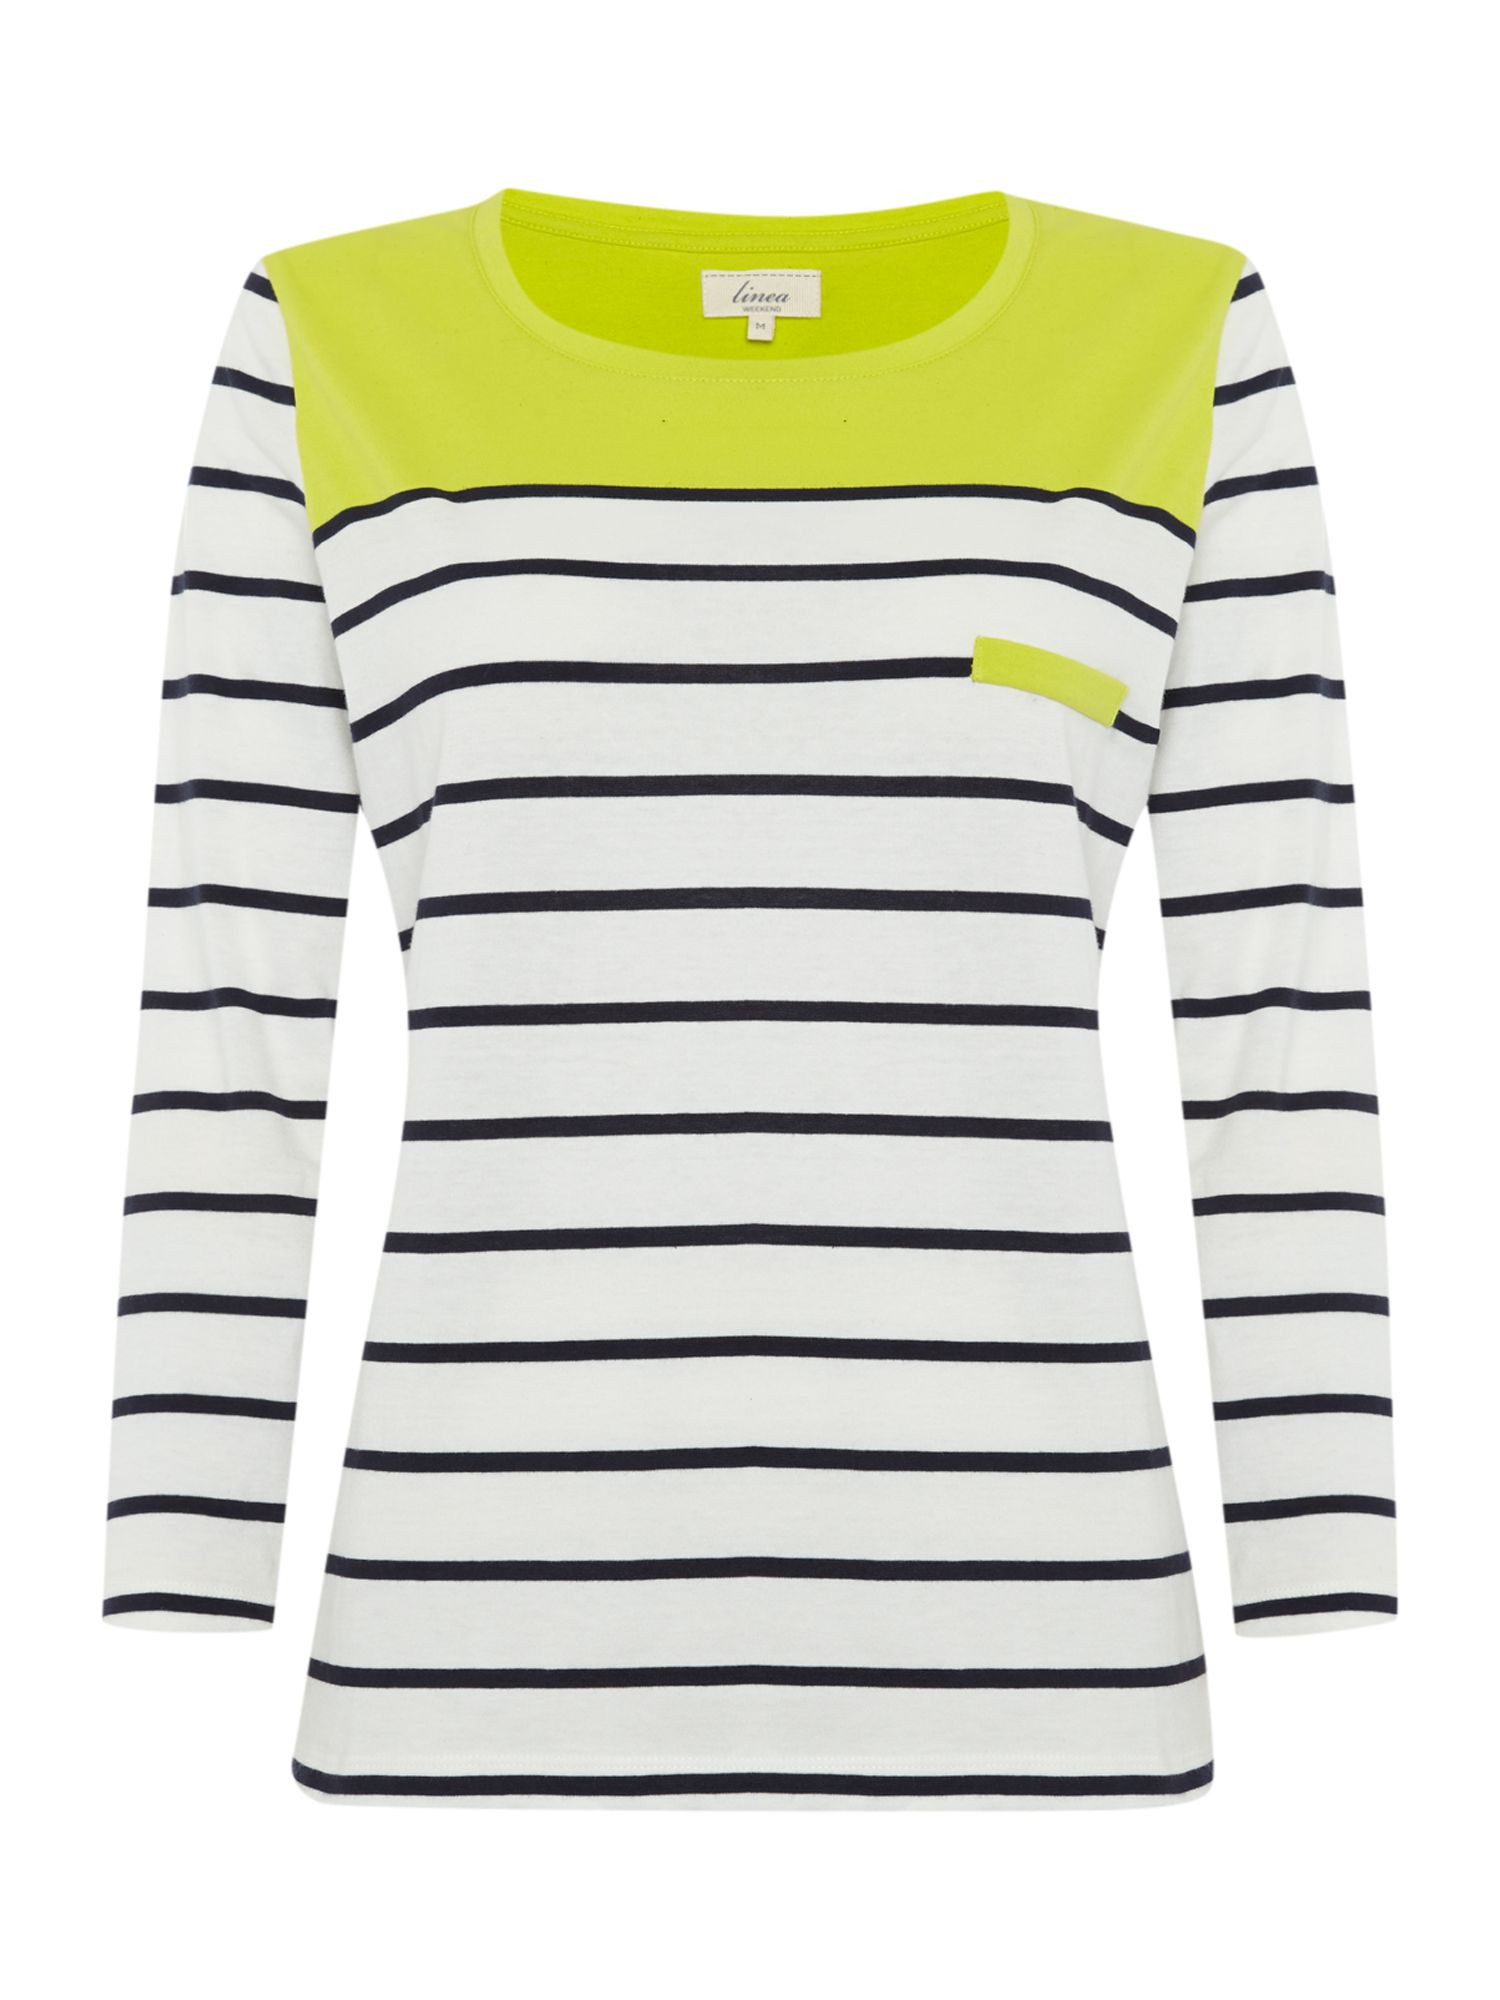 Contrast stripe jersey top